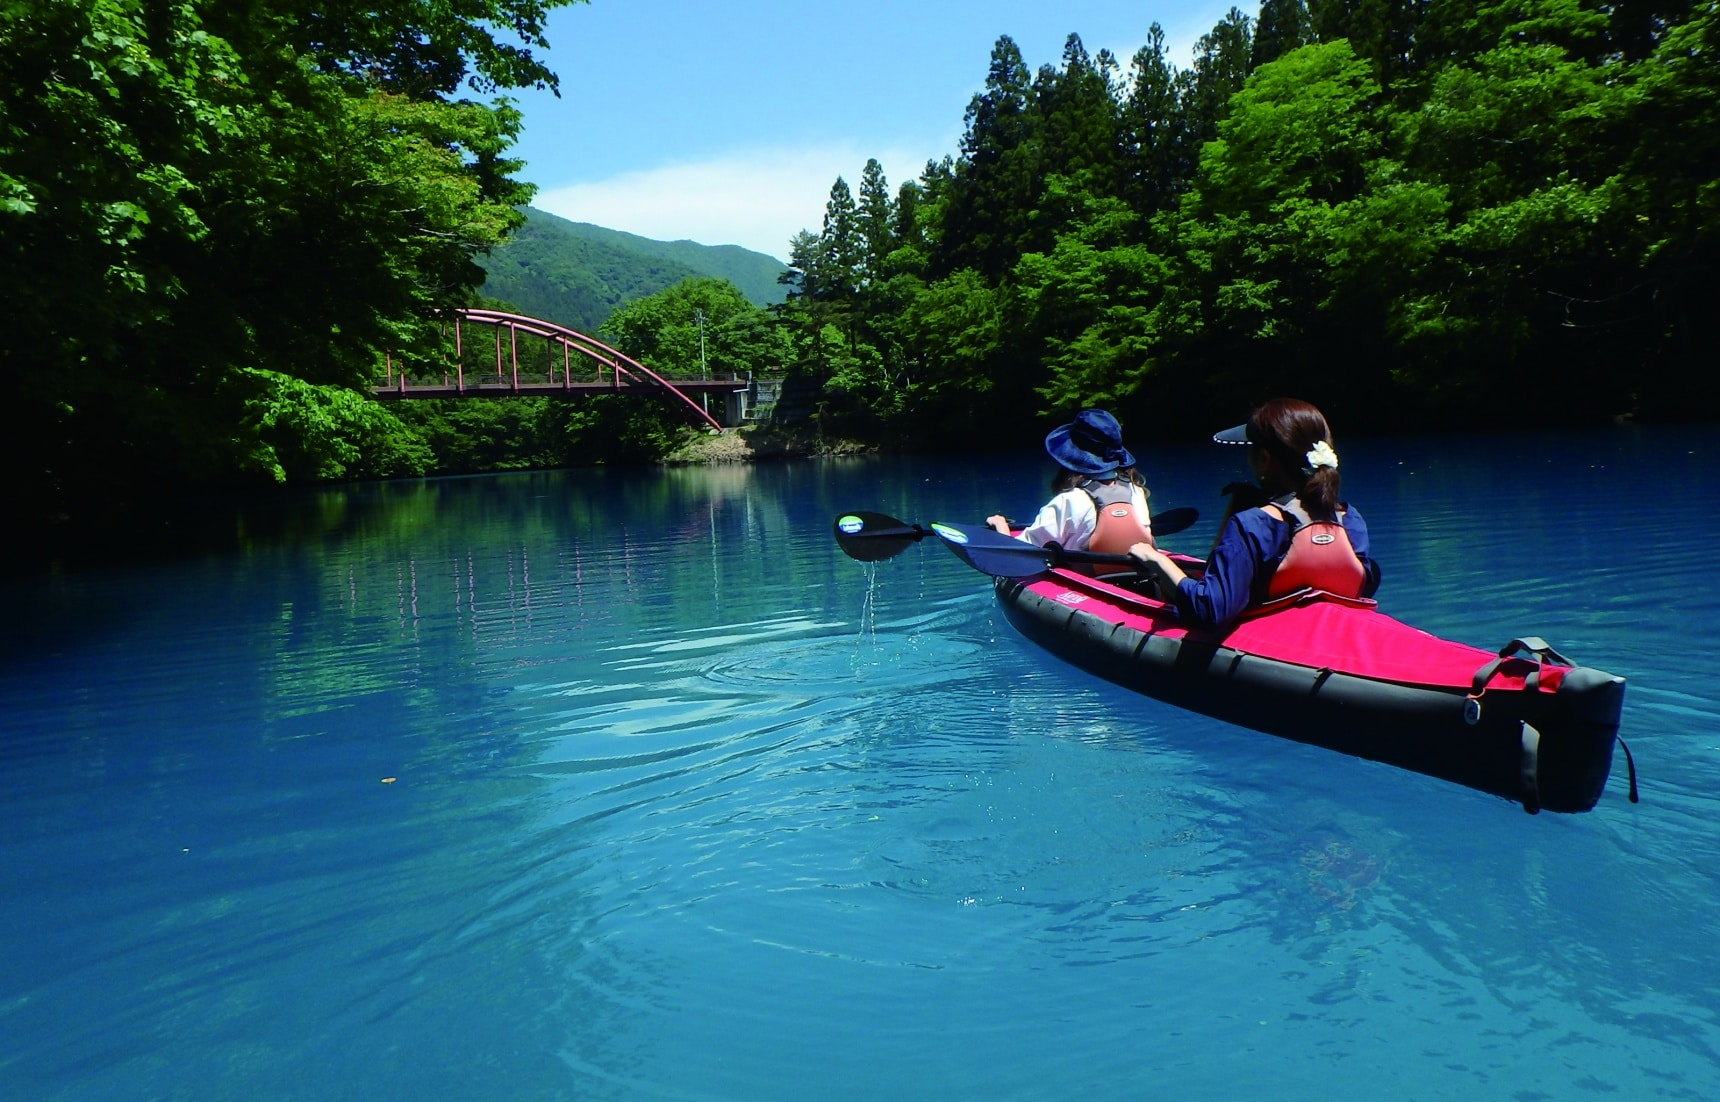 11 Things to Do in Gunma in Summer